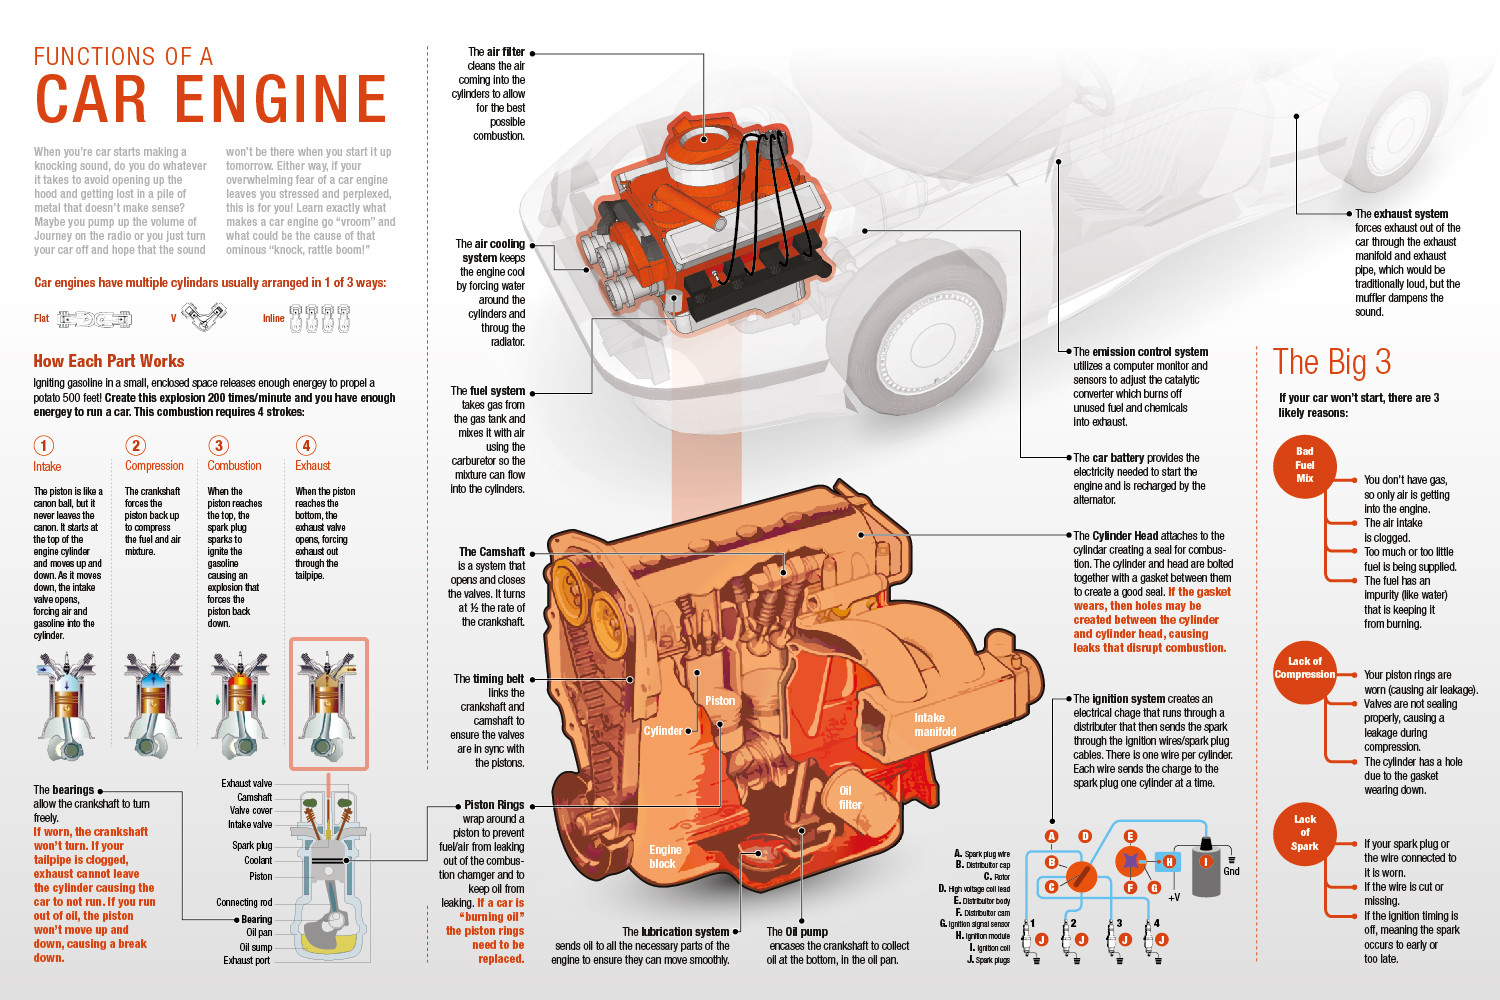 FUNCTIONS OF A CAR ENGINE | Visual.ly